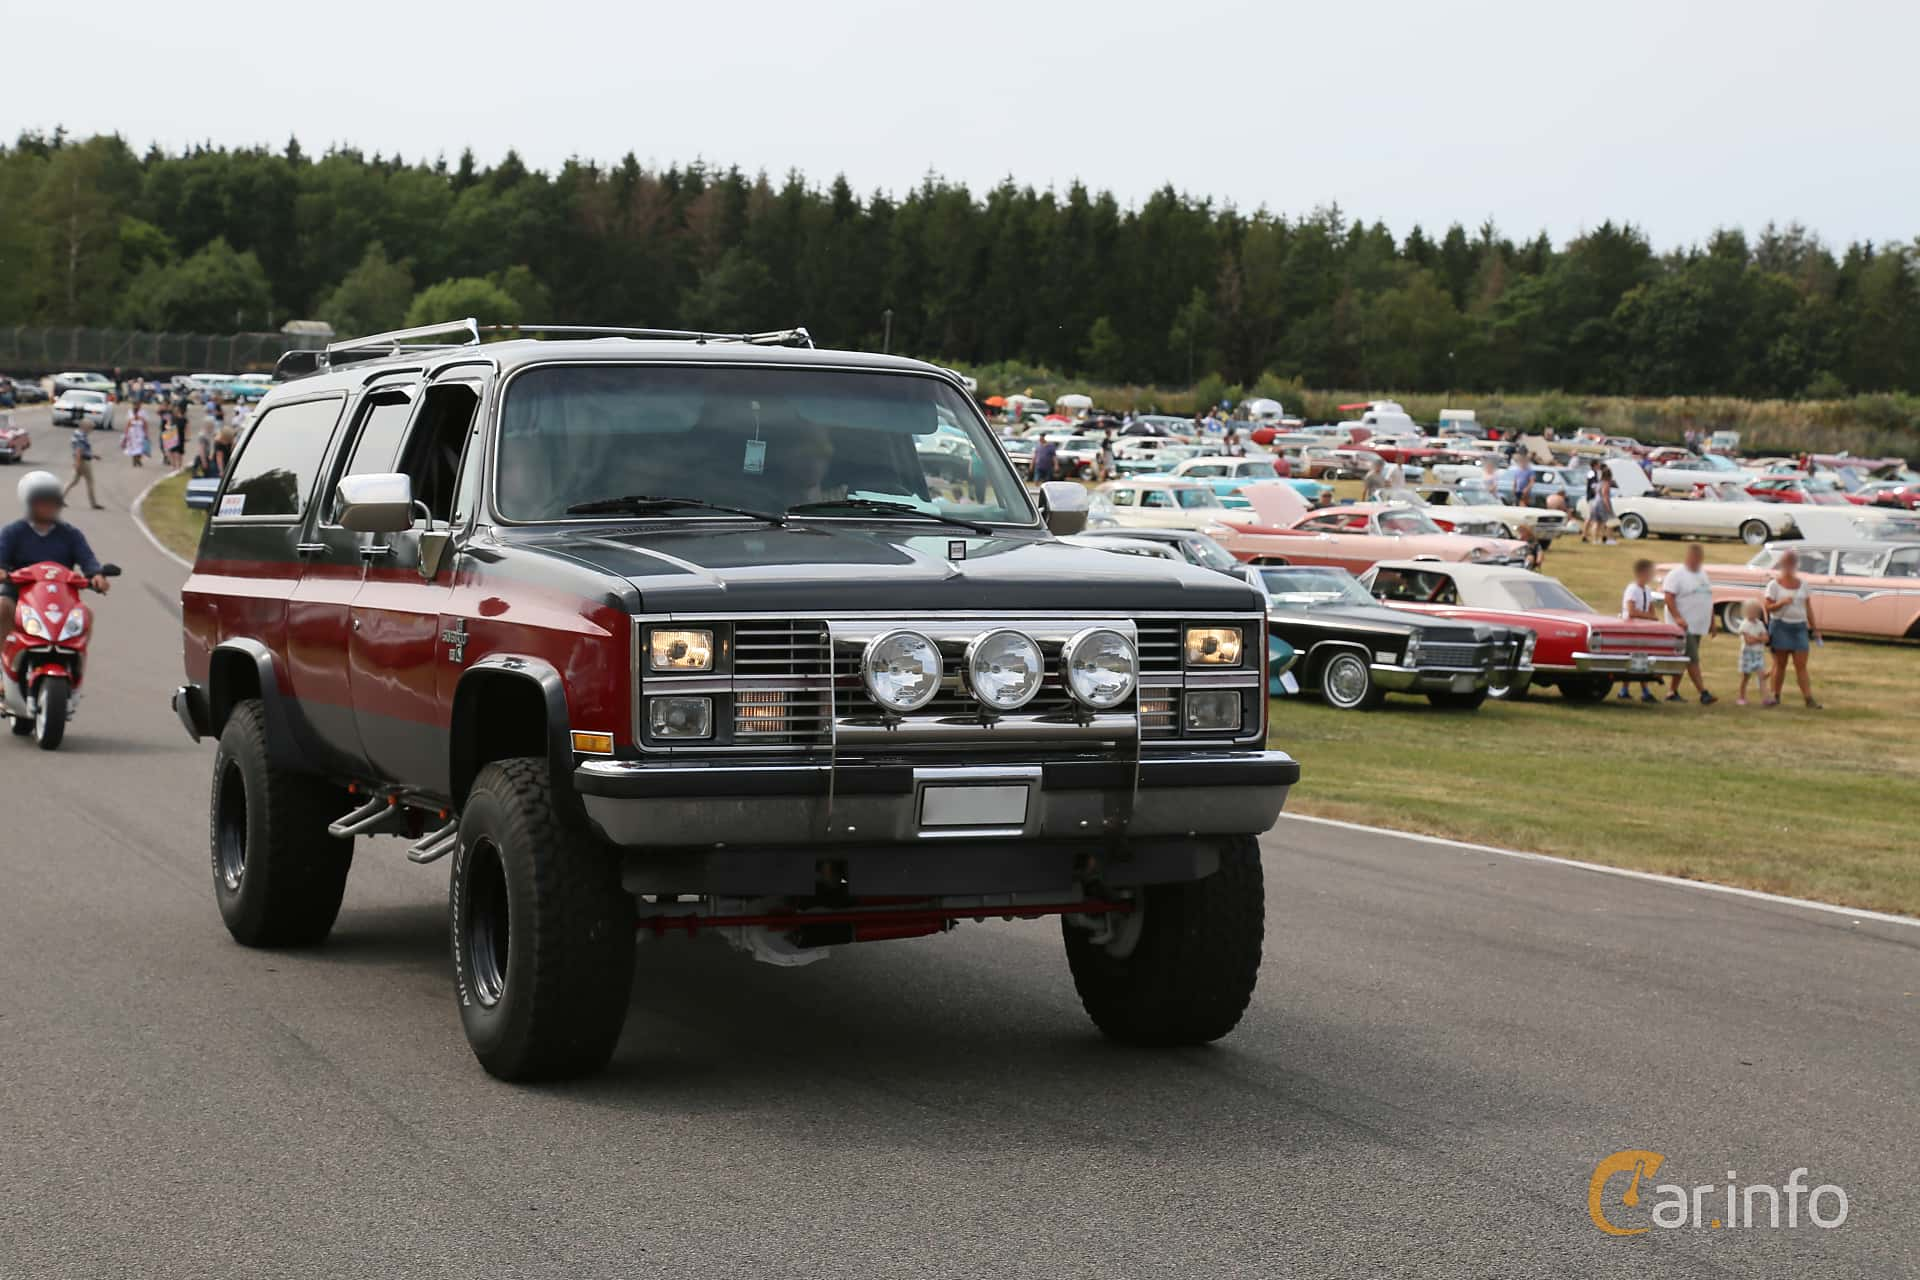 Chevrolet K20 Suburban 6.2 V8 4WD Hydra-Matic, 137hp, 1982 at Wheels & Wings 2019